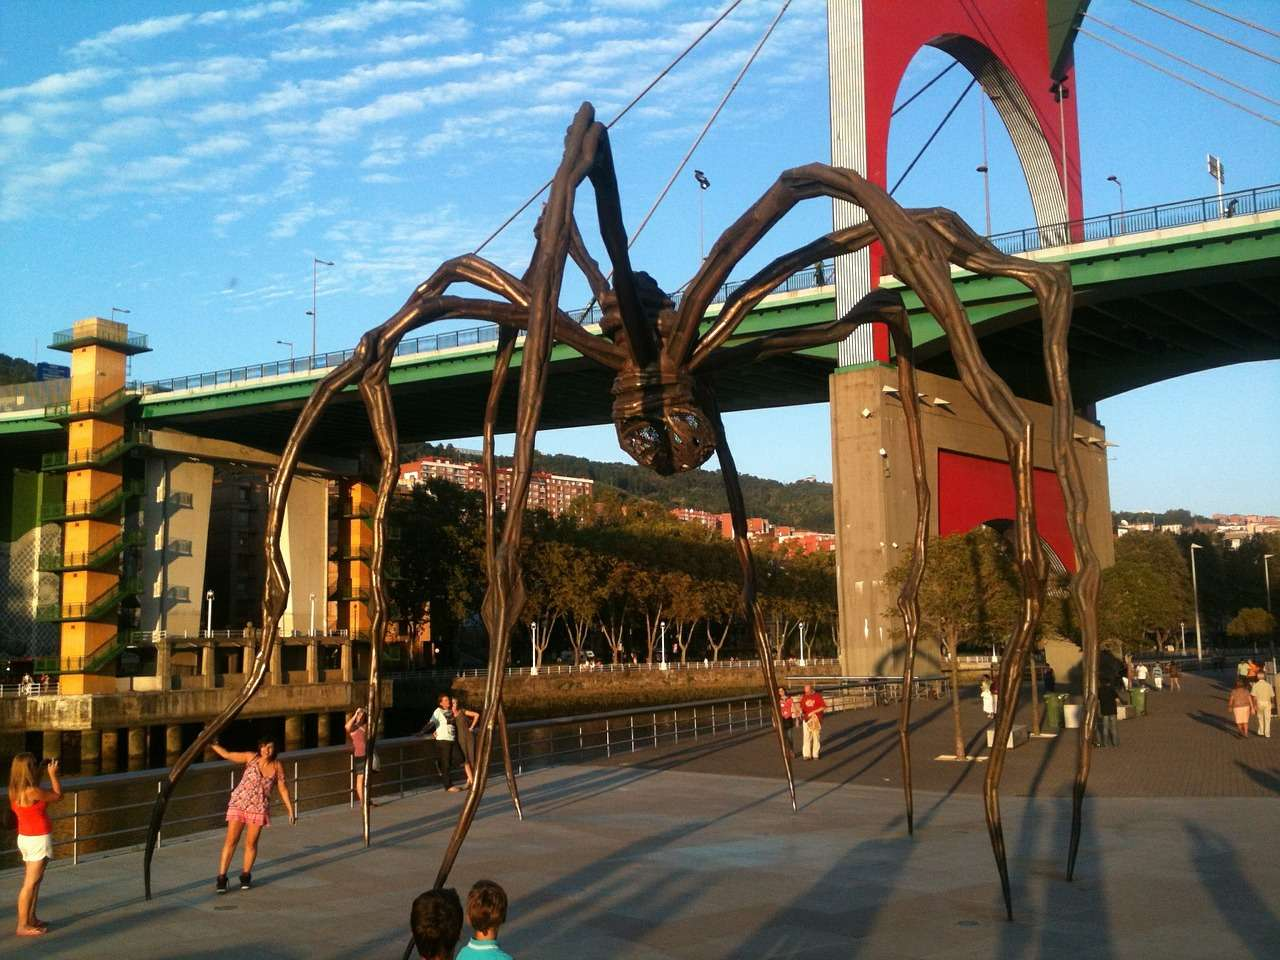 Spider in bilbao Museum - The Best Travel Guide to Bilbao, Spain